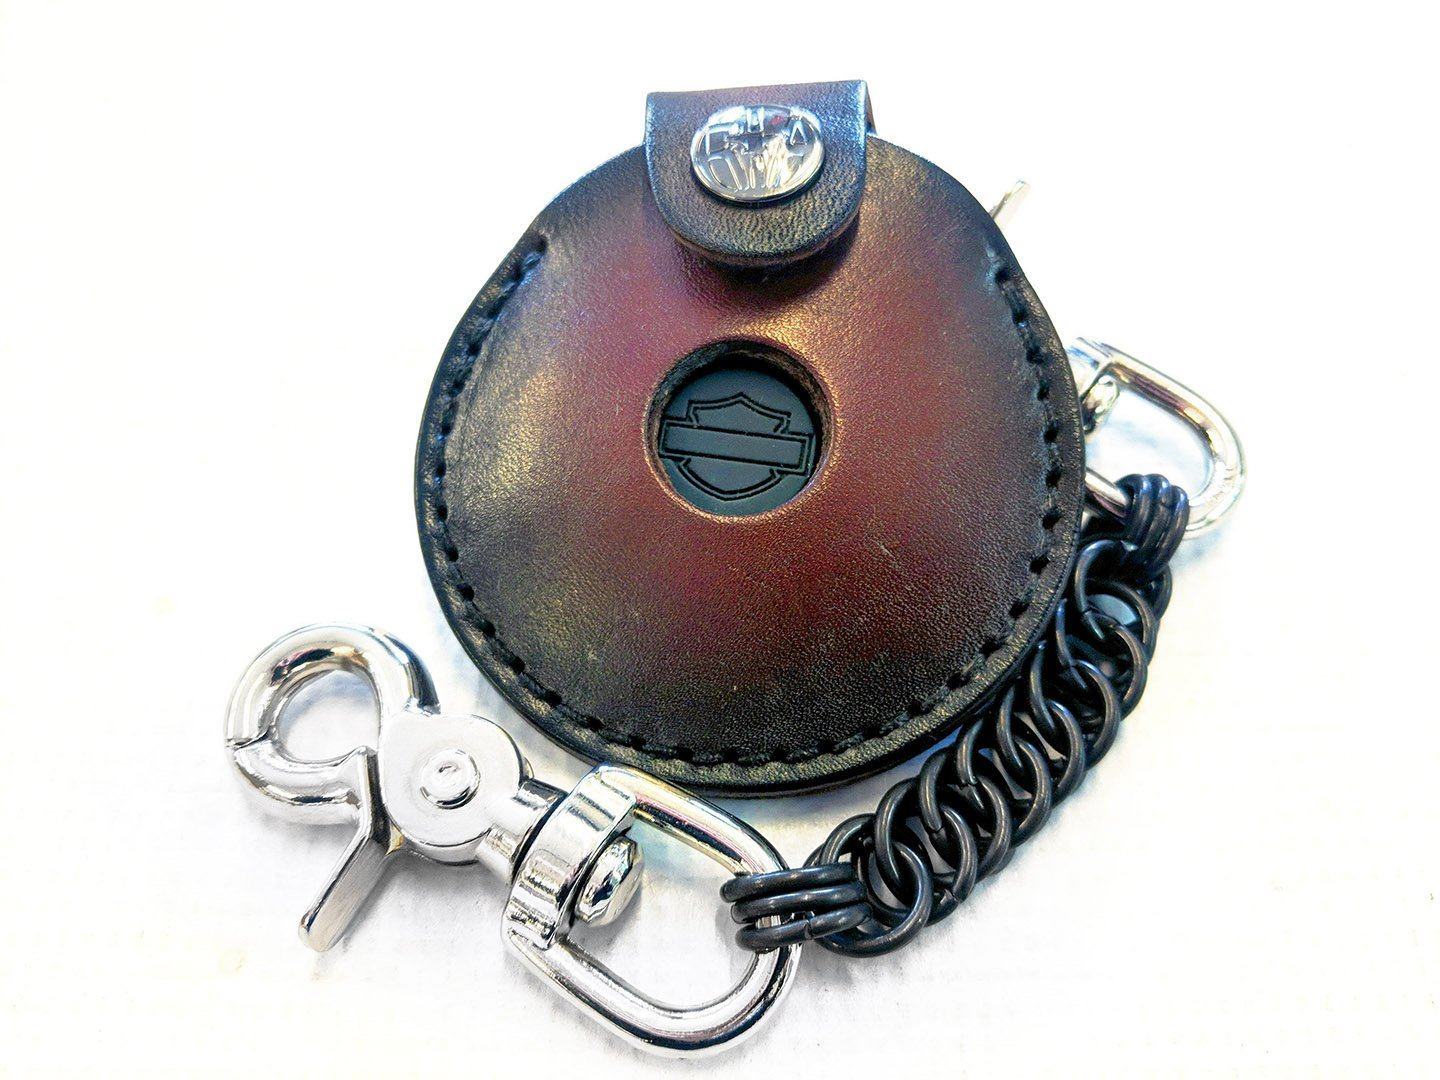 Harley-Davidson Alarm Remote Key Leather Fob - Anvil Customs